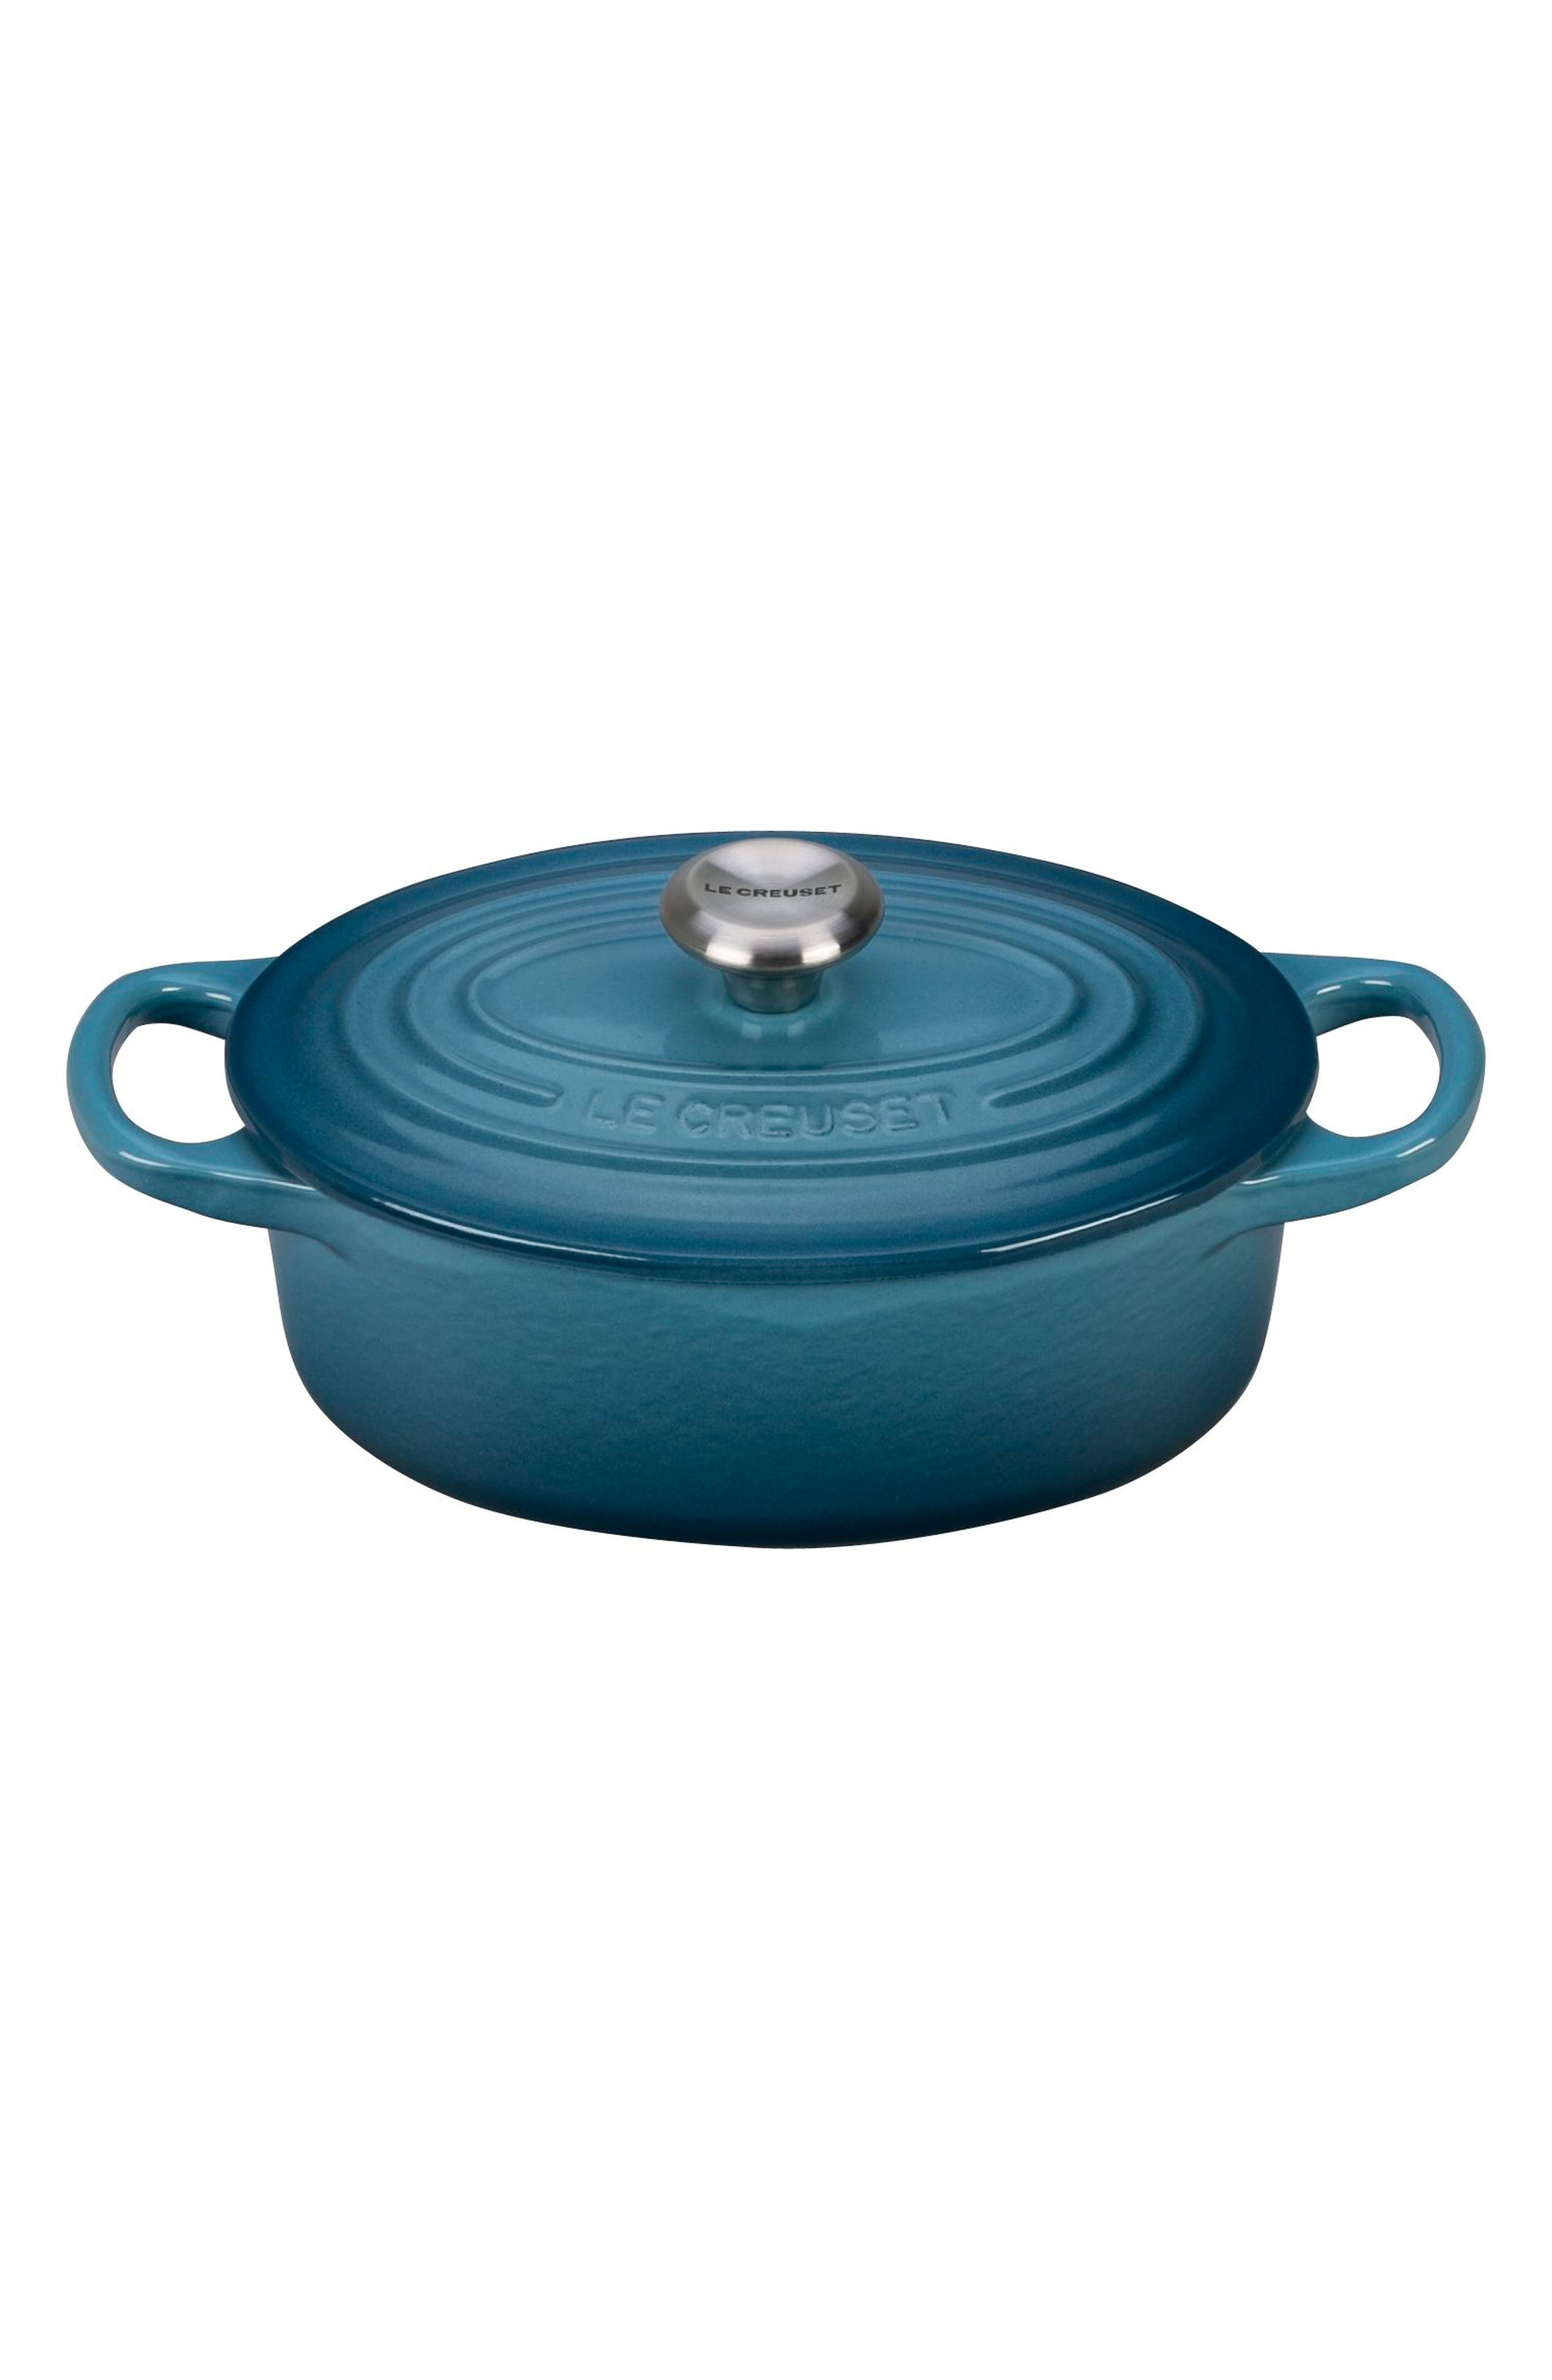 Signature 1-Quart Oval Enamel Cast Iron French/Dutch Oven,                             Main thumbnail 1, color,                             MARINE